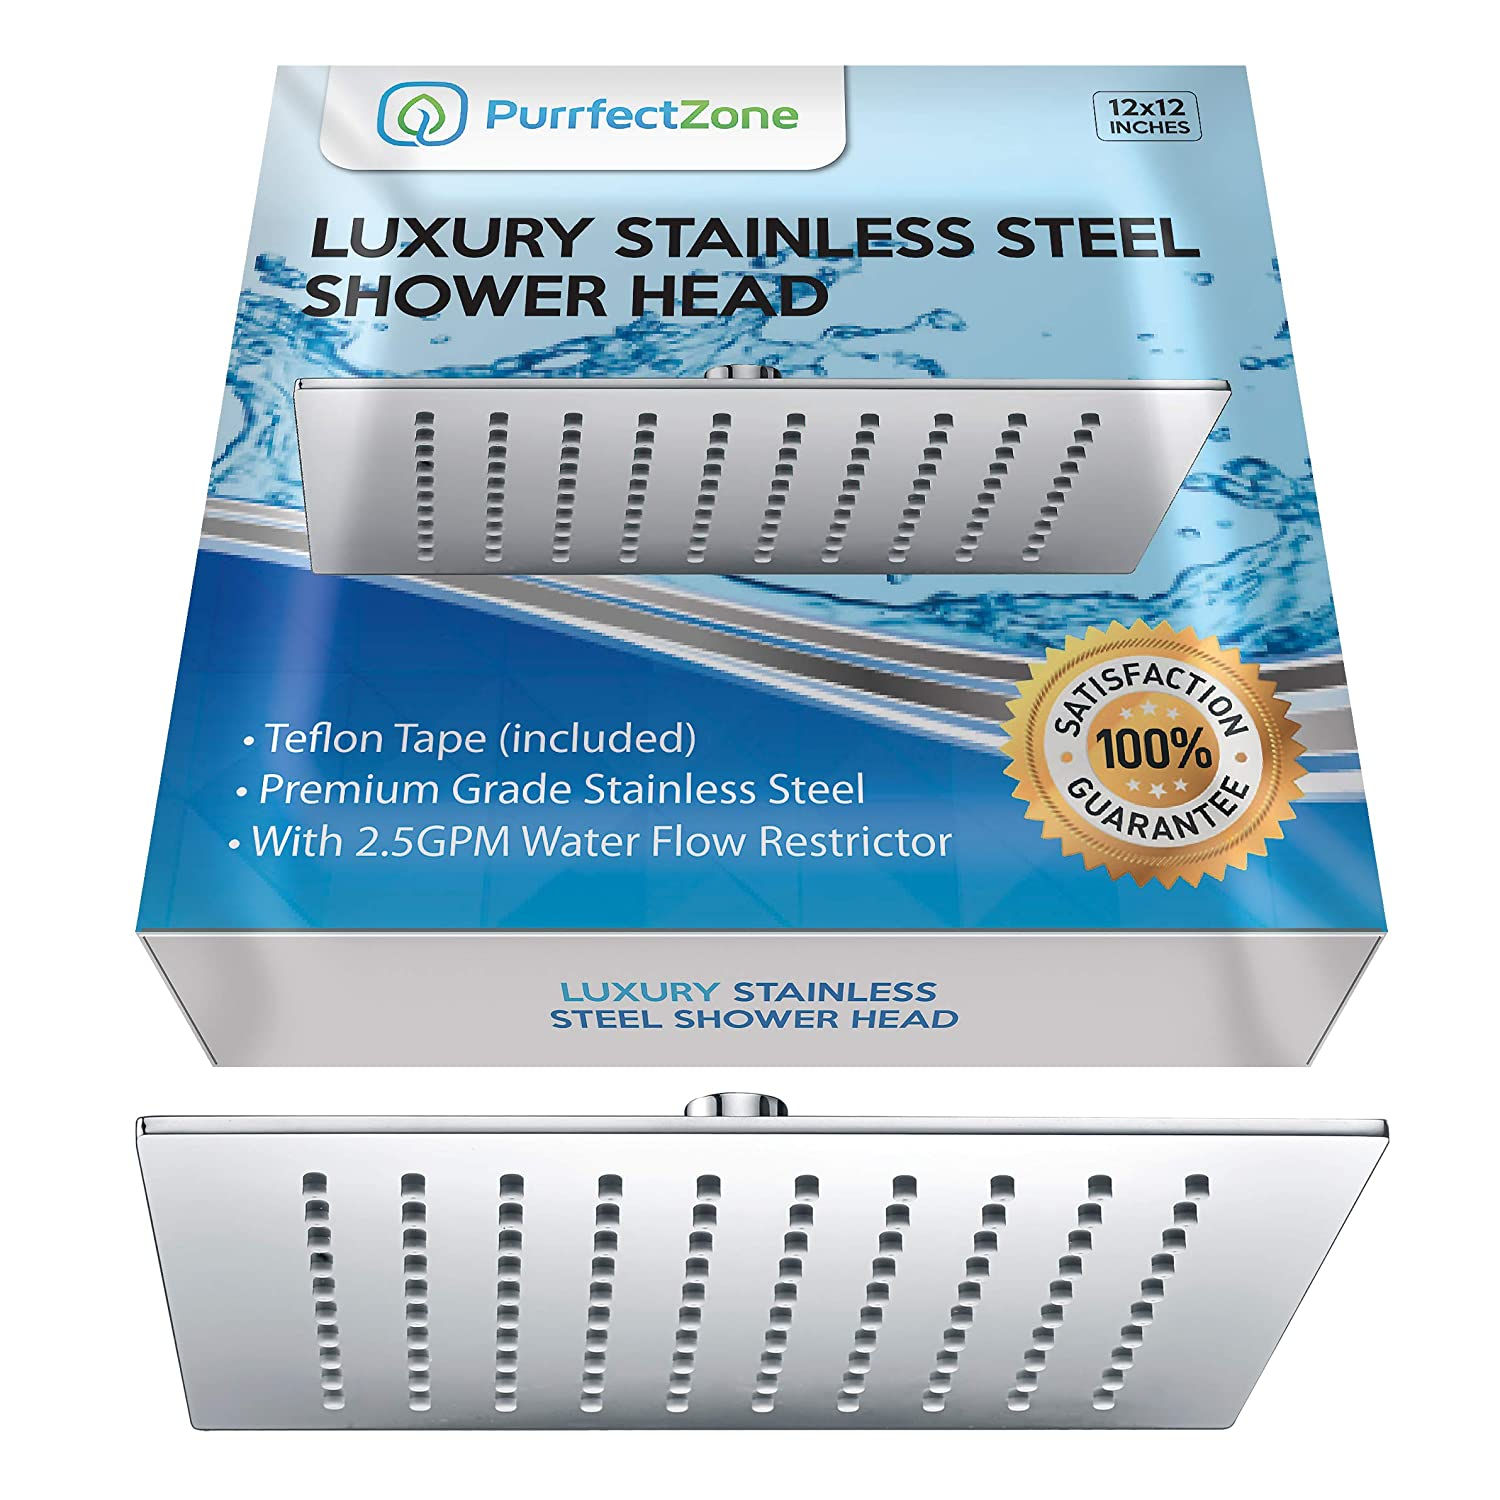 PurrfectZone Top Rated Luxury 12 inch Large Rain Shower Head Made of 4 mm Thick Solid Stainless Steel Brass in Beautiful Chrome Finish. Perfect for Getting a Good Drenching Waterfall Shower